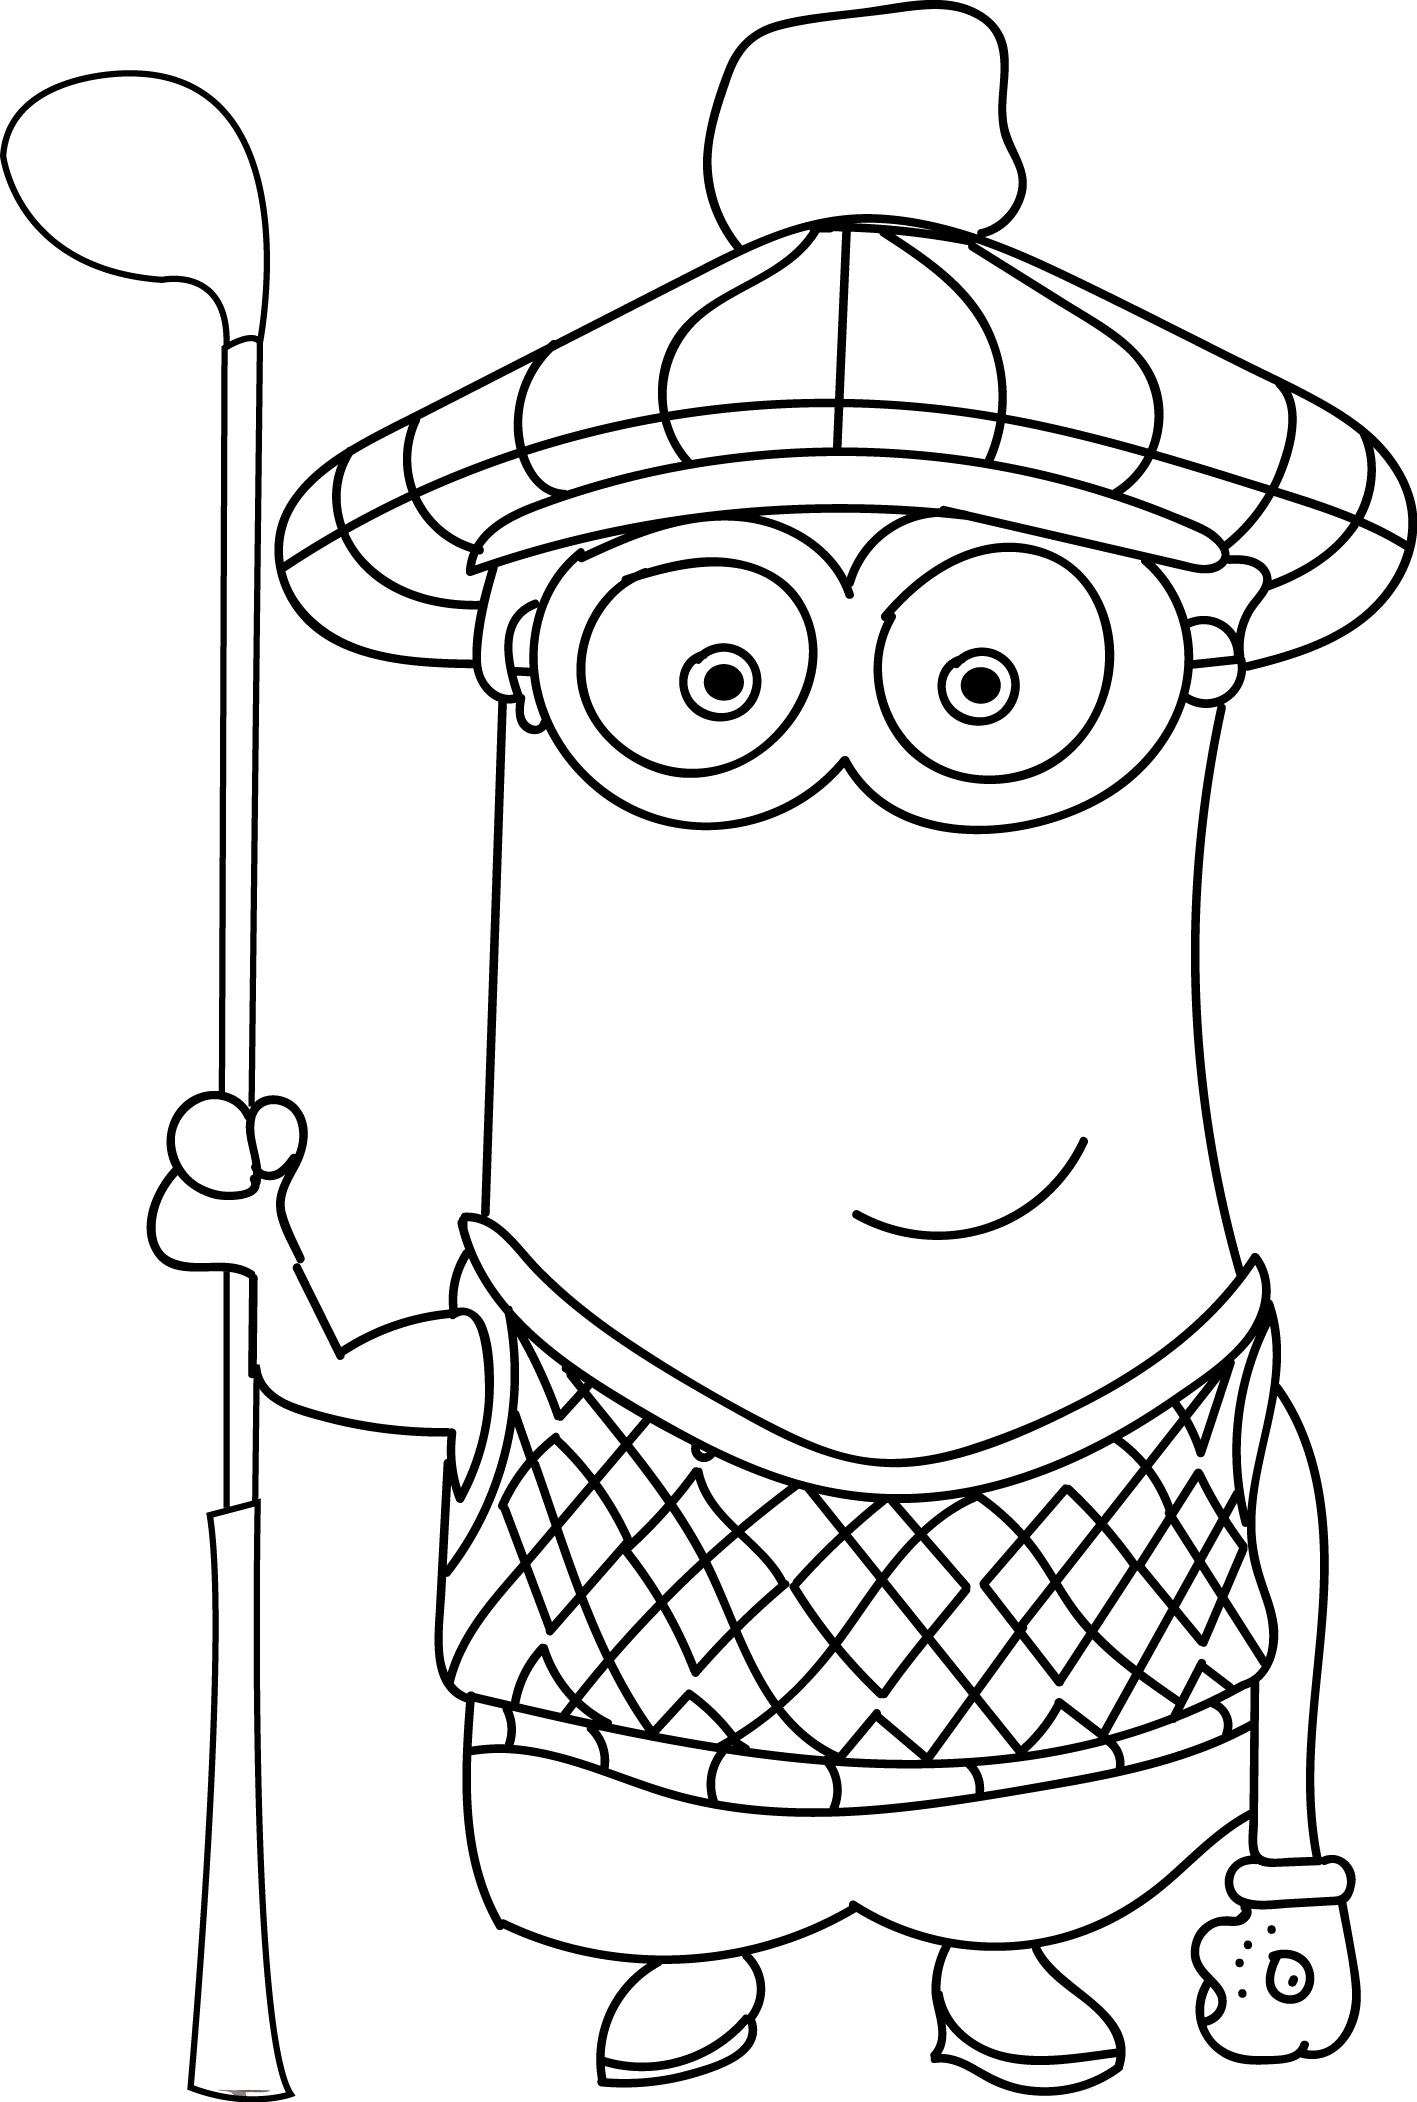 minion waiting golf coloring page wecoloringpage